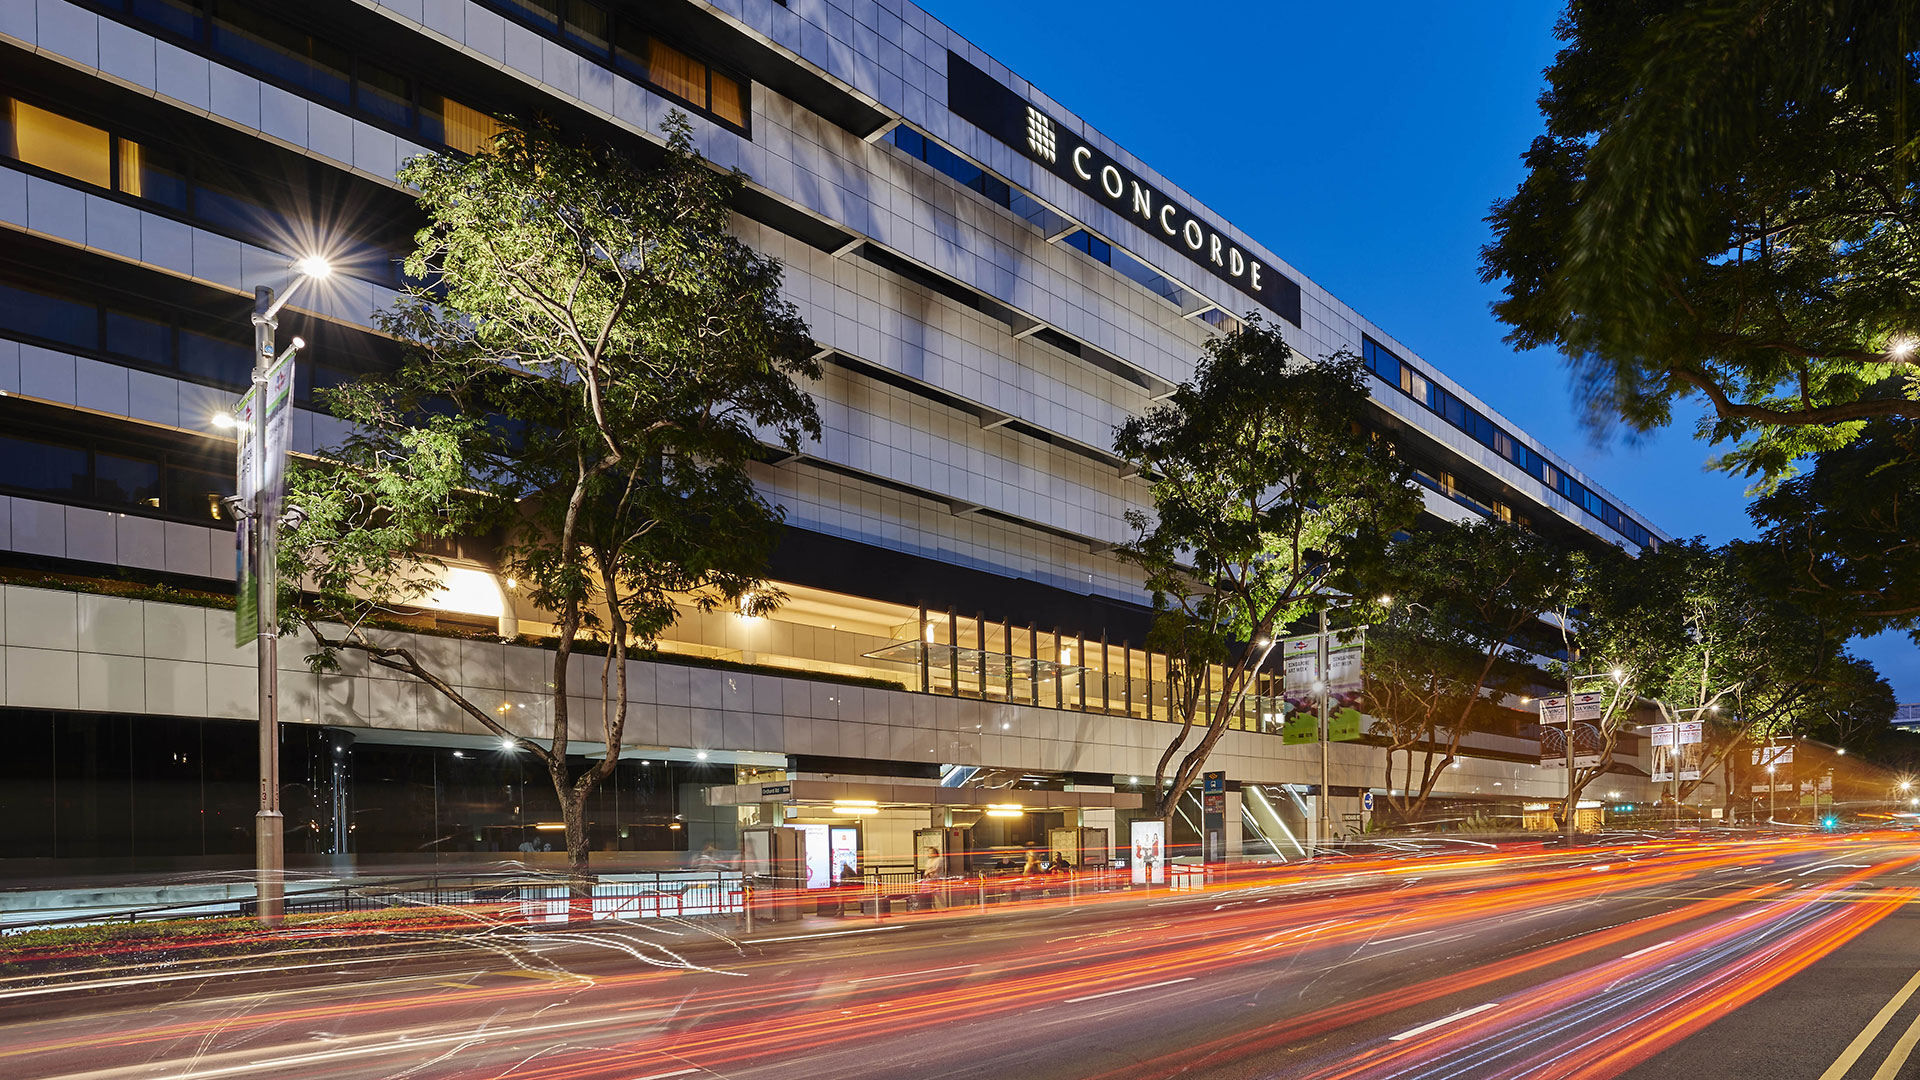 Concorde hotel singapore hotel in orchard official site